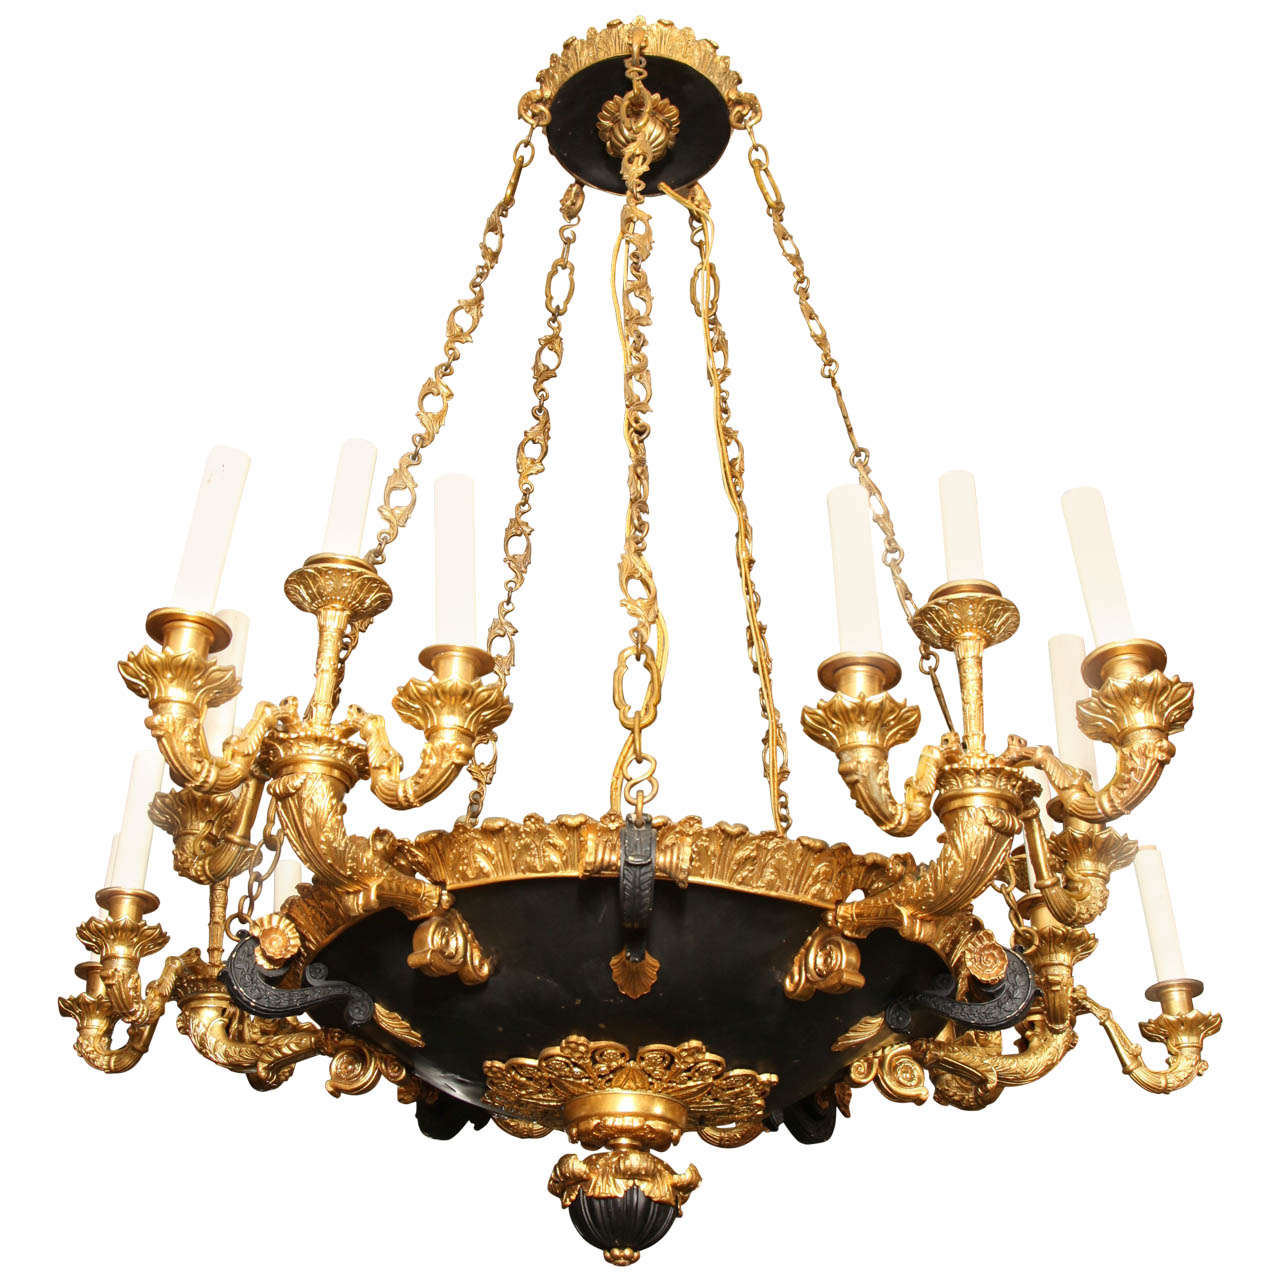 A Very Large 19th Century French Empire Style Twenty Light Chandelier For